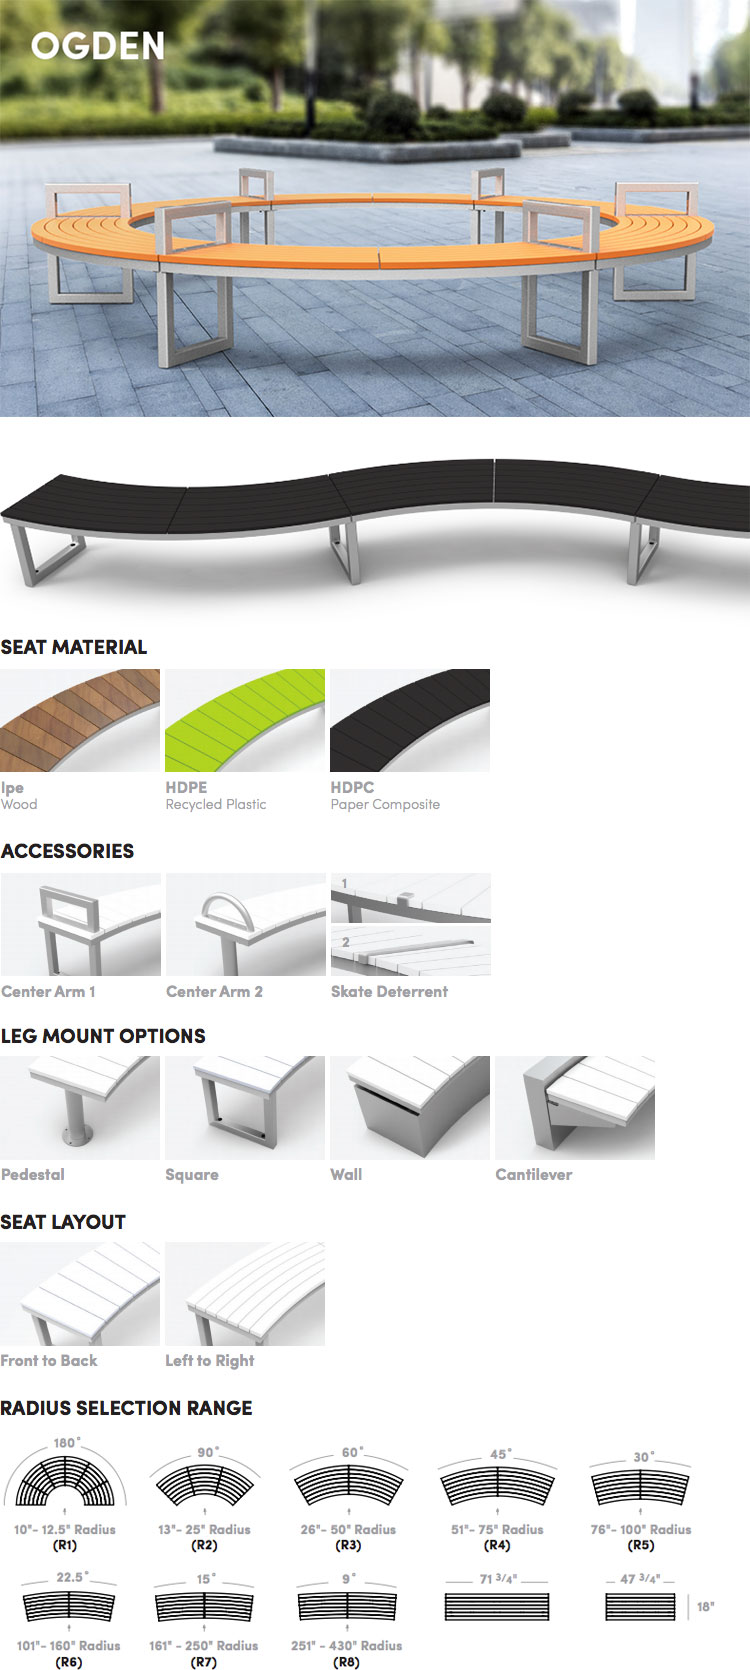 Ogden by Maglin Site Furniture offers flexible straight, curved or circular bench options to suit any style